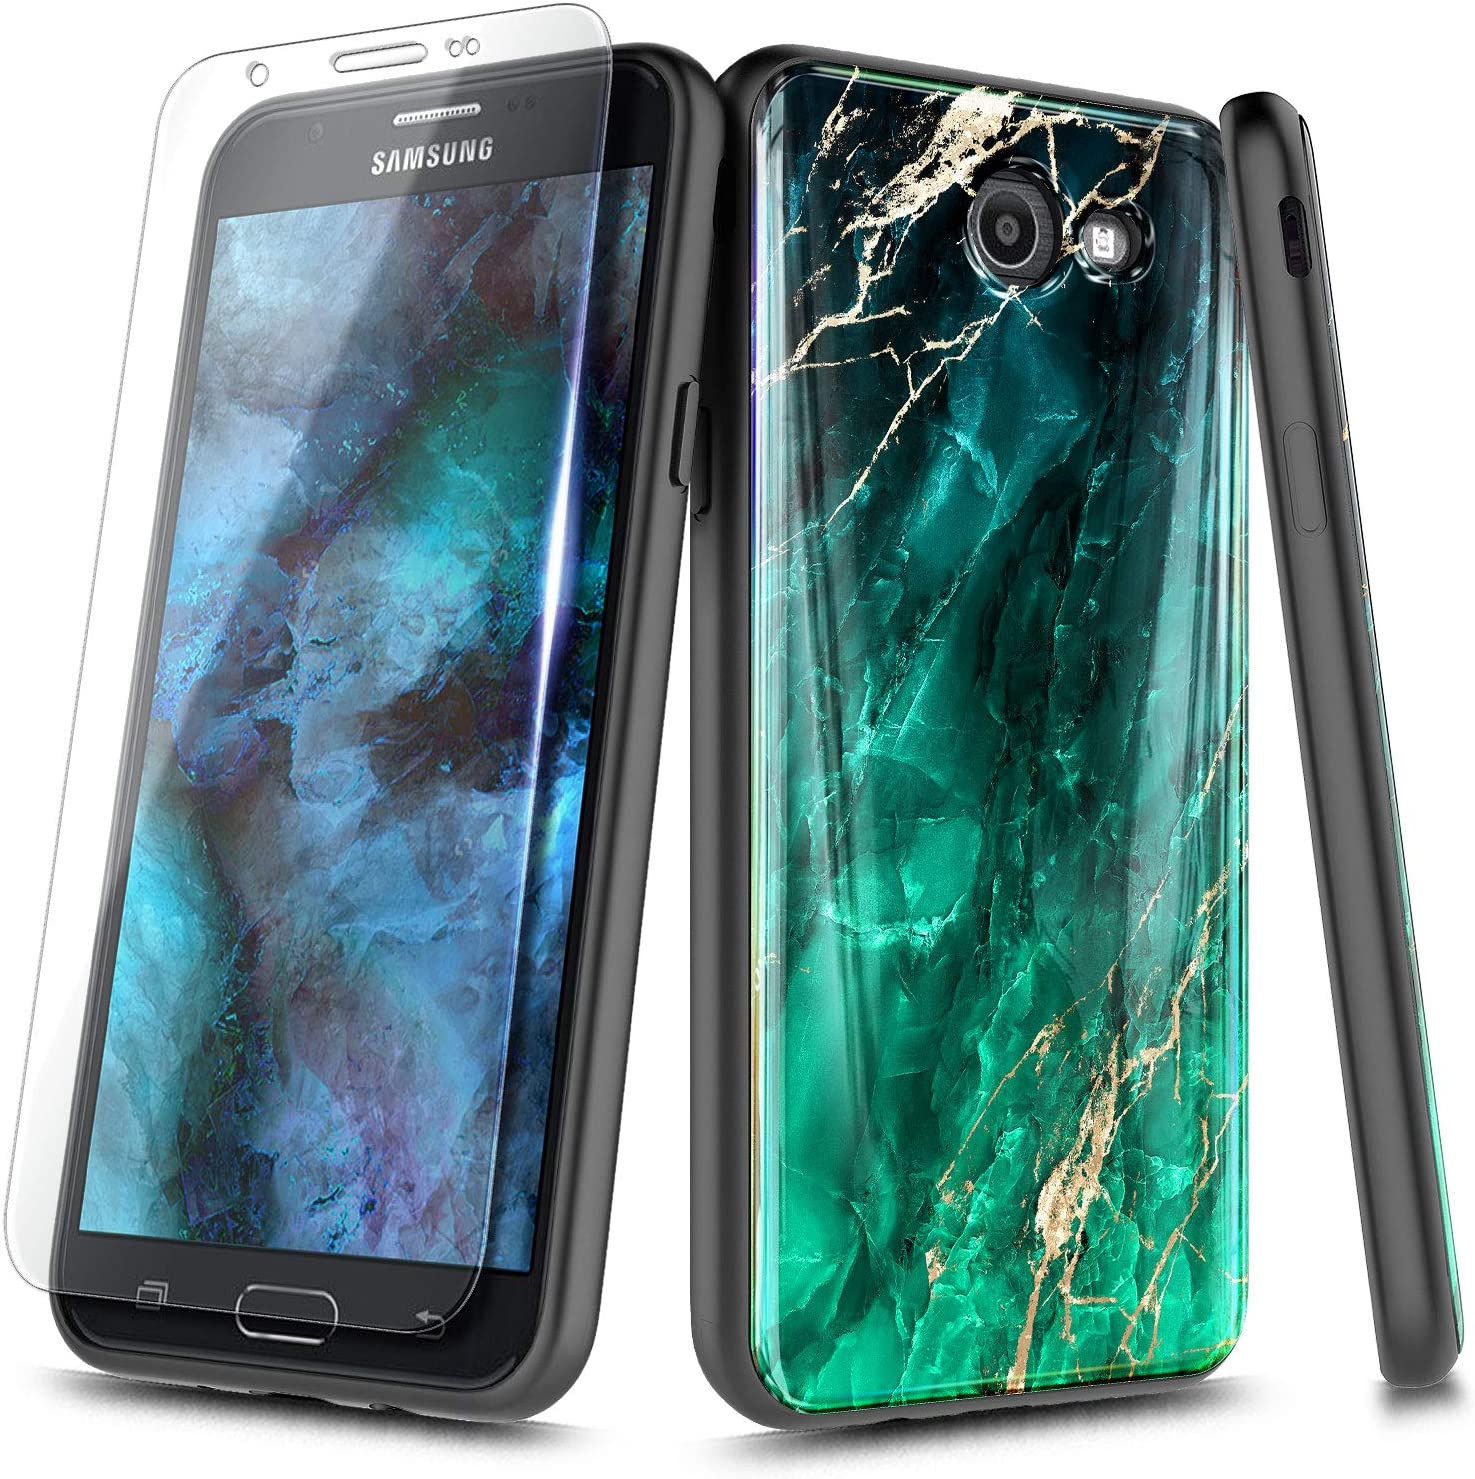 NageBee Case for Samsung Galaxy J7 2017 (Not Fit J7 2018), J7 V 2017(1st Gen) /J7 Prime/J7 Perx/J7 Sky Pro/Halo with Tempered Glass Screen Protector, Ultra Slim Thin Glossy Stylish Phone Case -Emerald